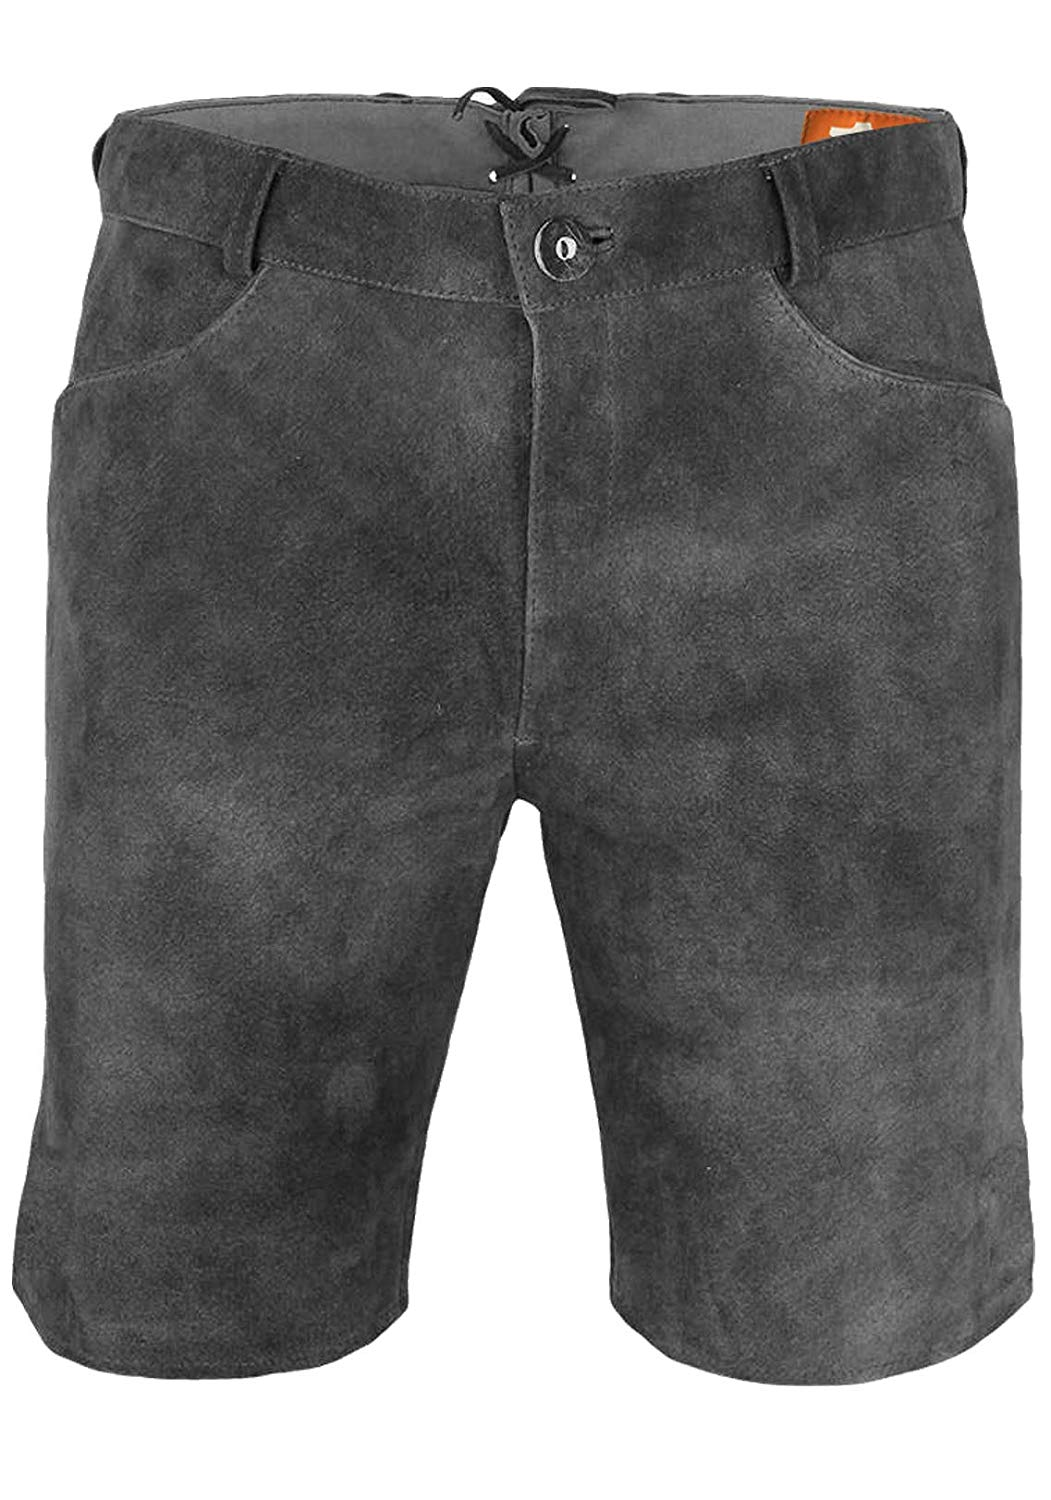 Original Distressed Leather Brown Vintage Style Men/'s Leather Flat Front Shorts Grey